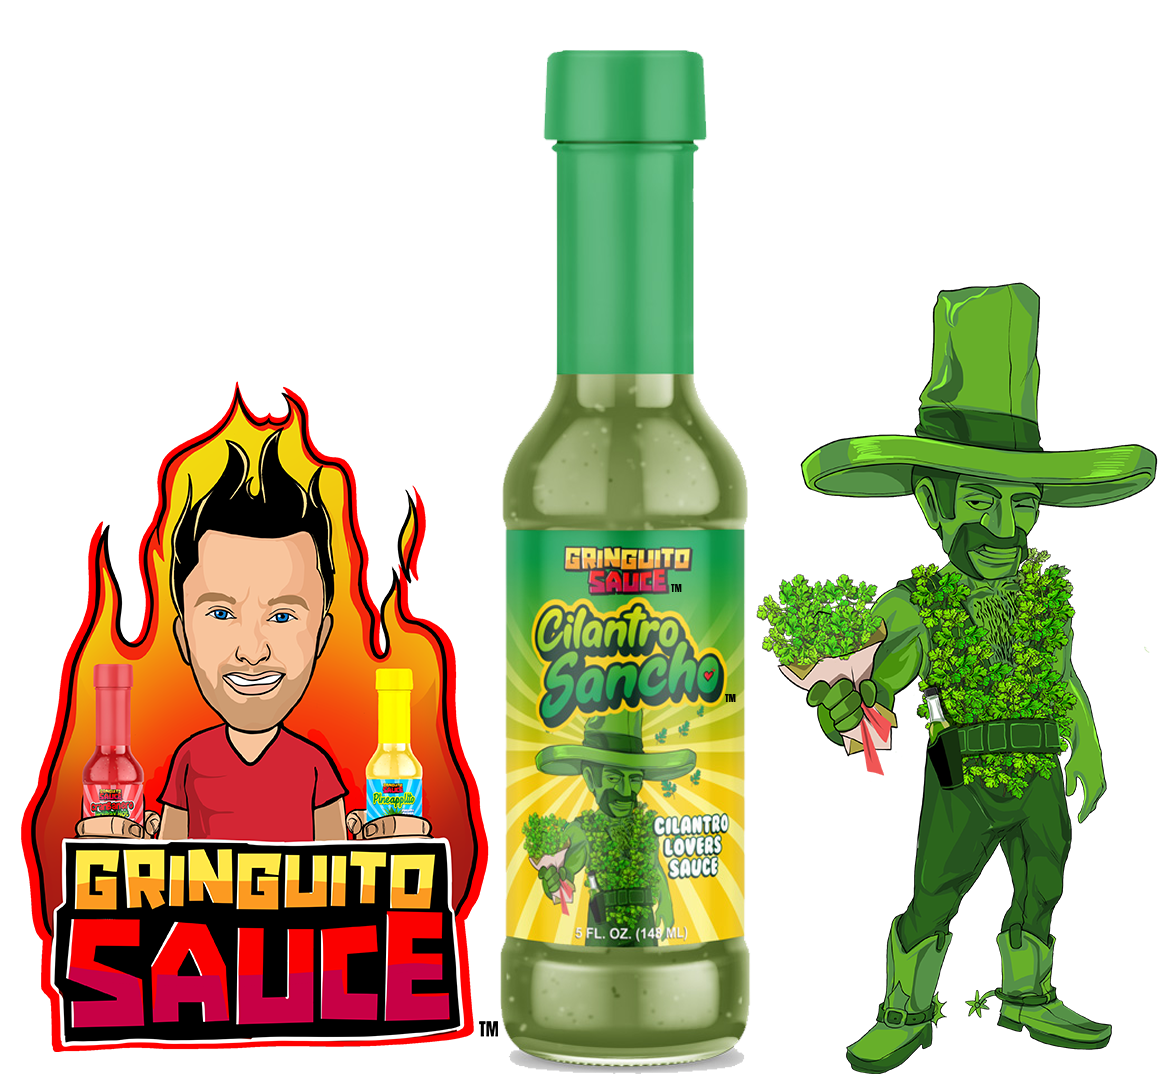 Cilantro Sancho Hot Sauce